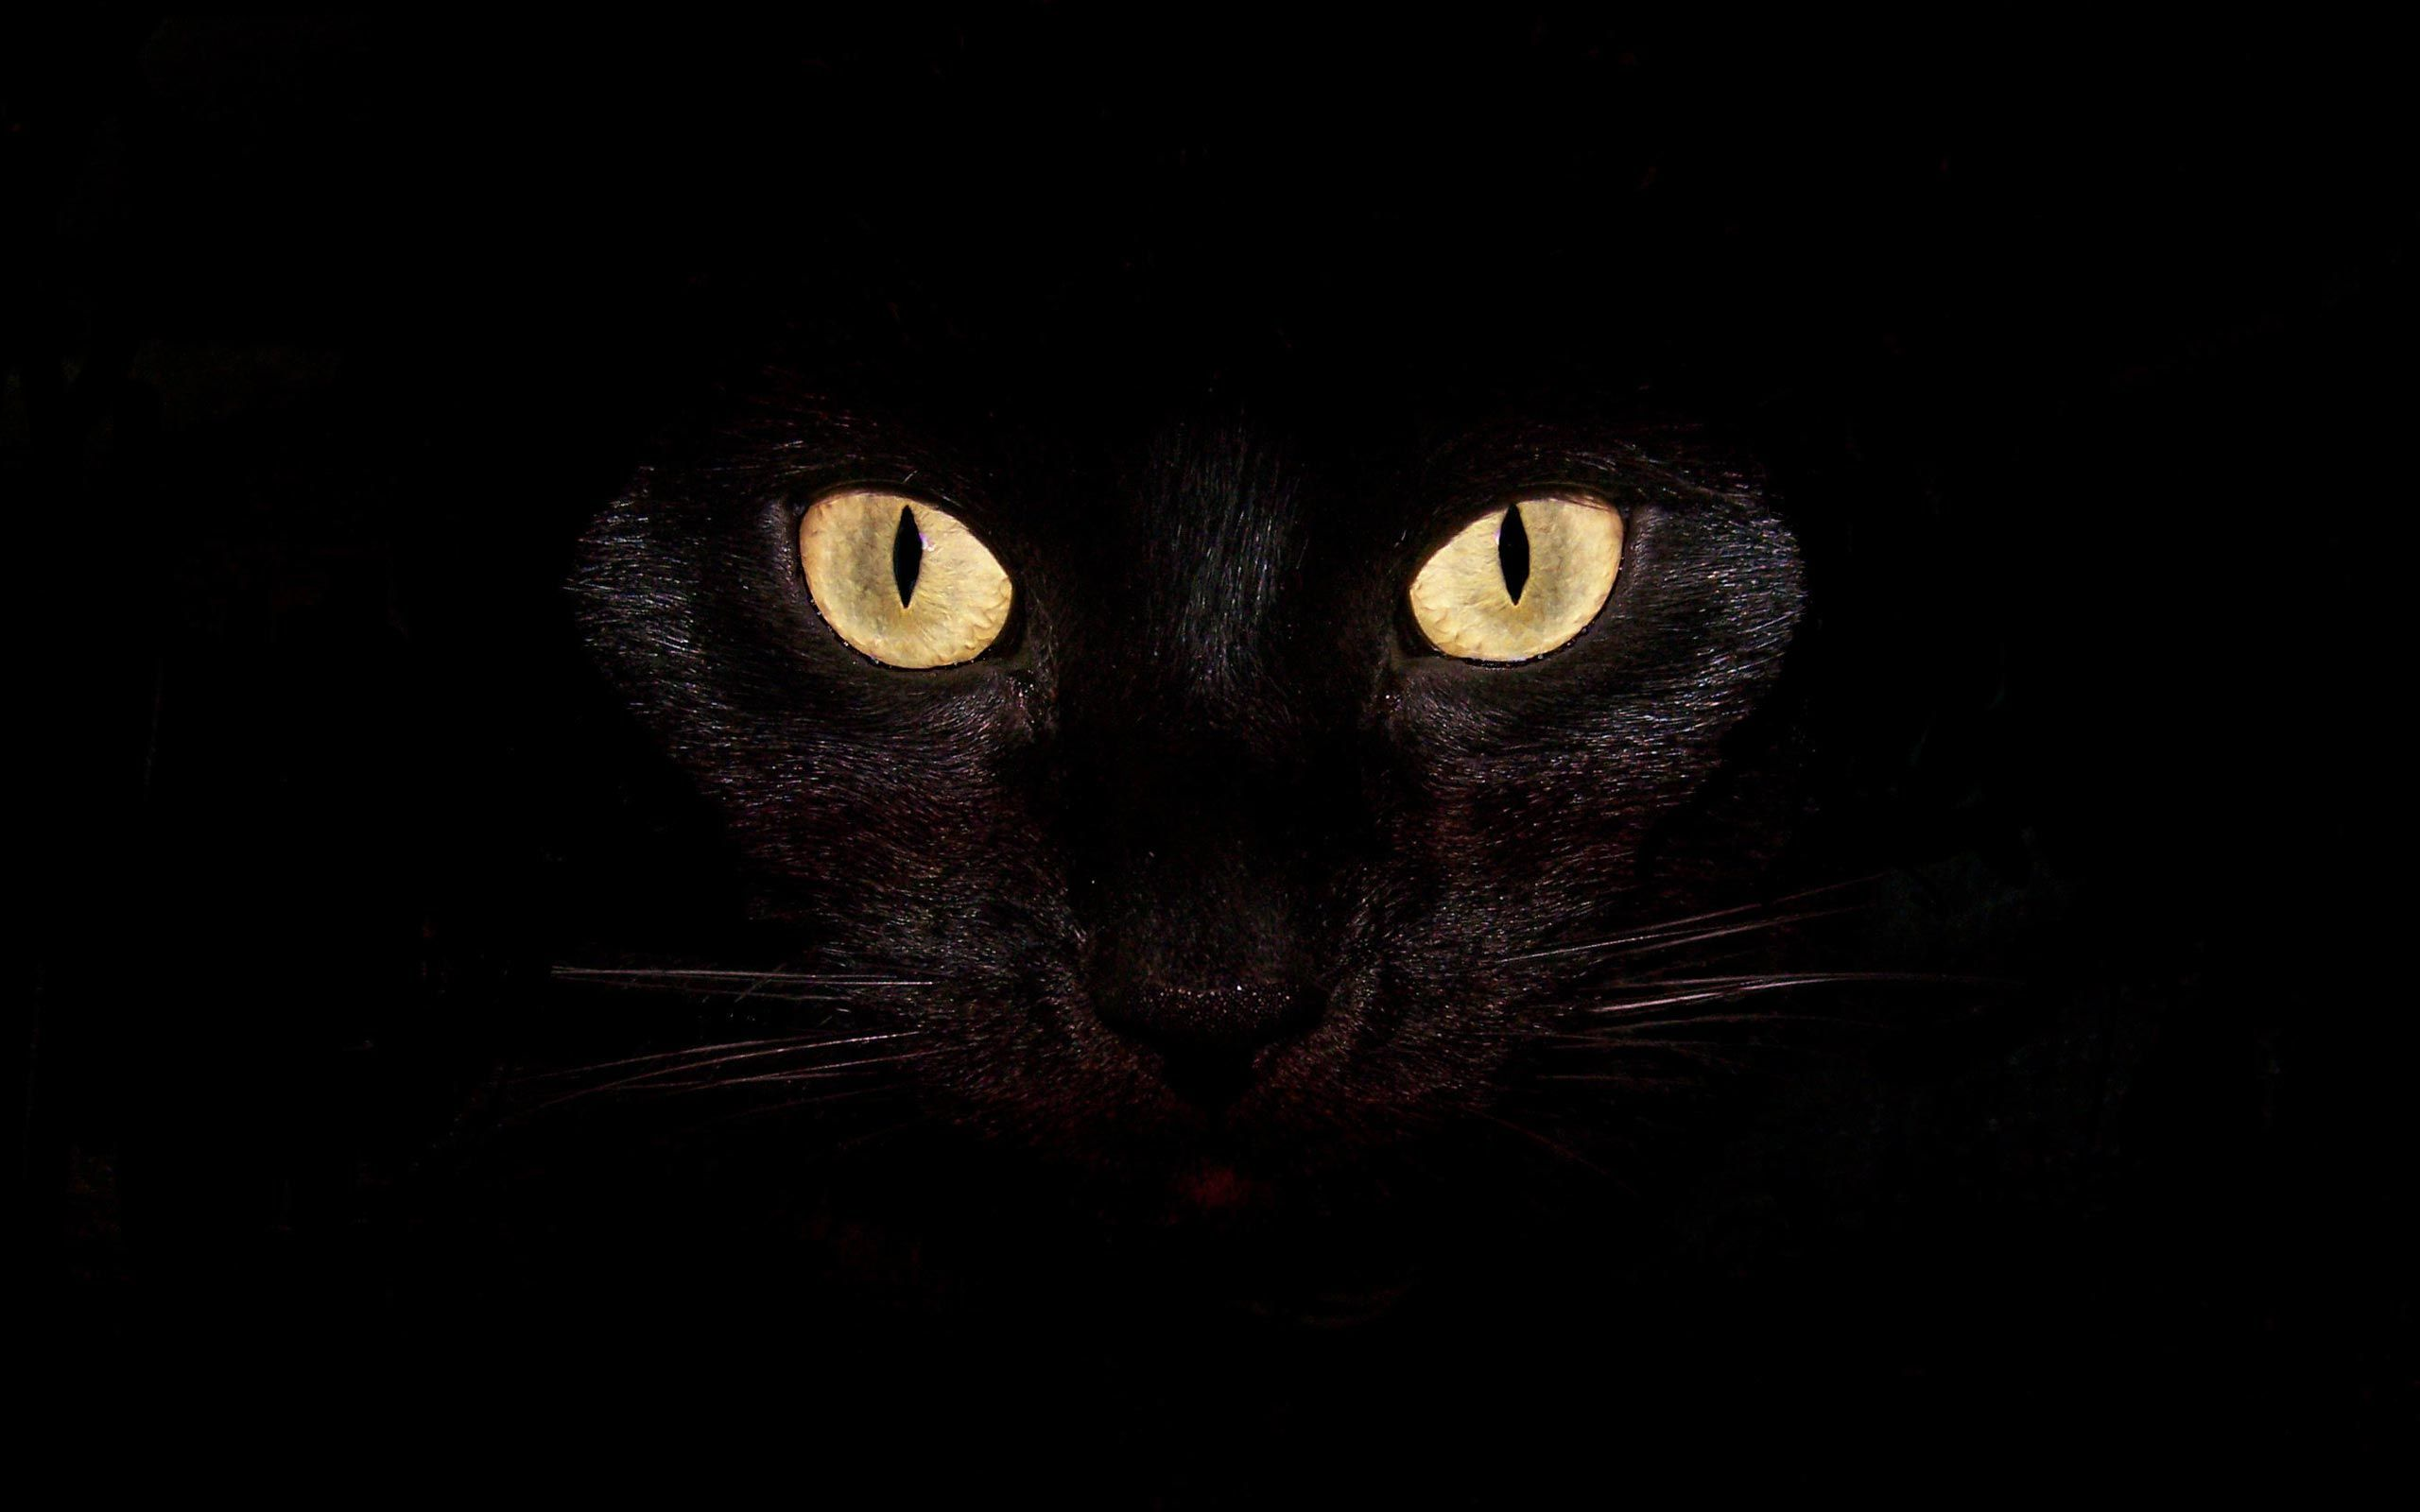 Black Cat Abstract Black Cat Backgrounds Wallpaper In High Resolution For Free With Images Cat Background Black Cat Eyes Cats